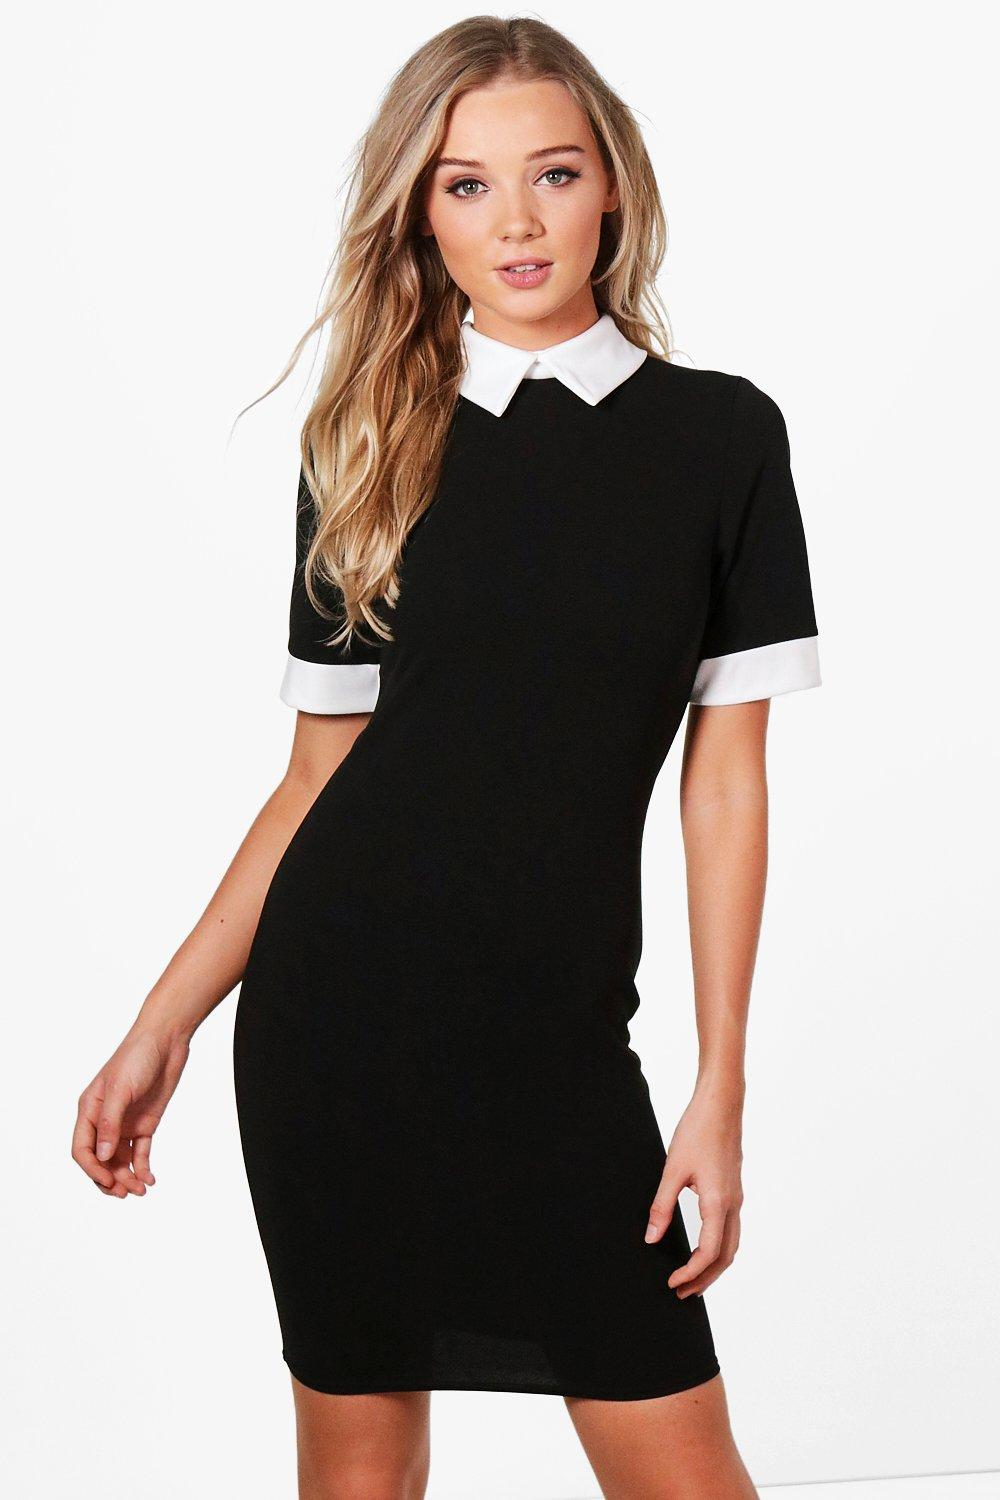 9e86a7b43 black dress contrast collar – Little Black Dress | Black Lace ...